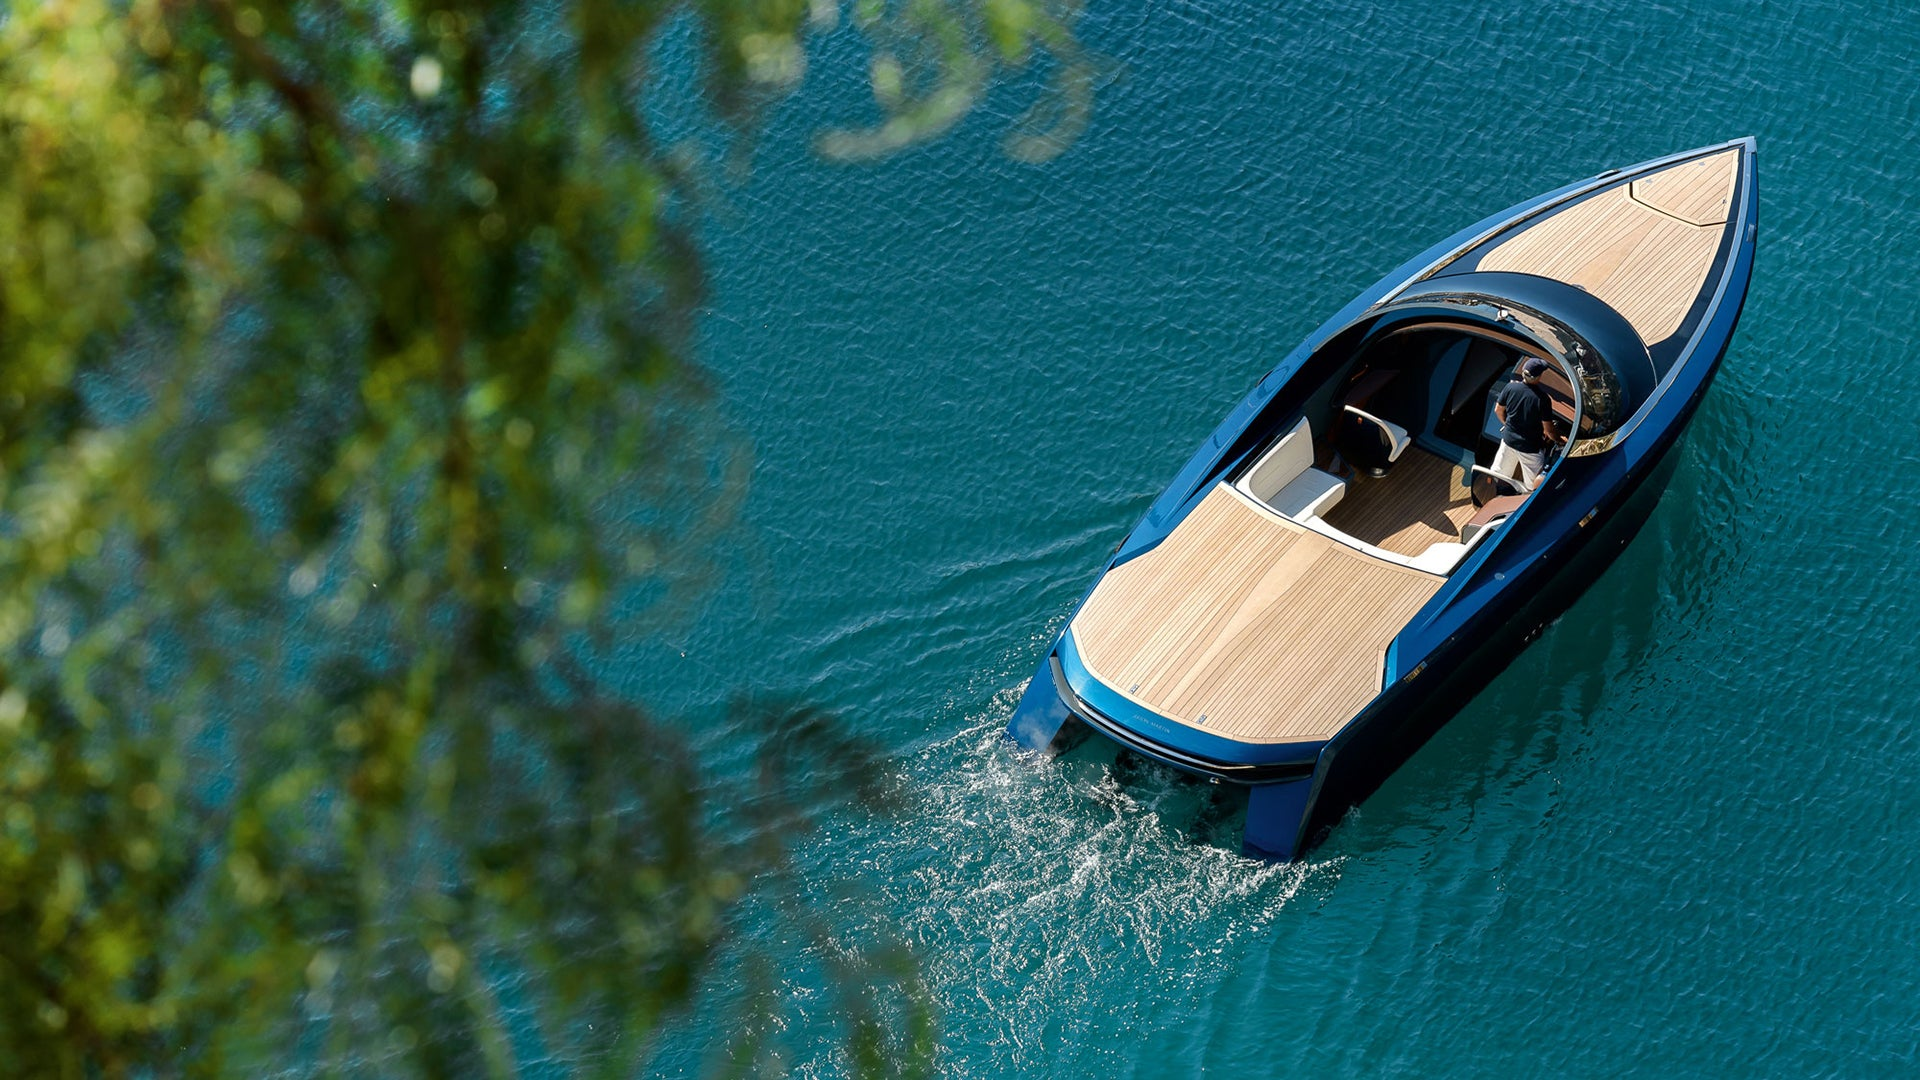 Aston Martin S First Boat Is Now In The Wild And It Looks